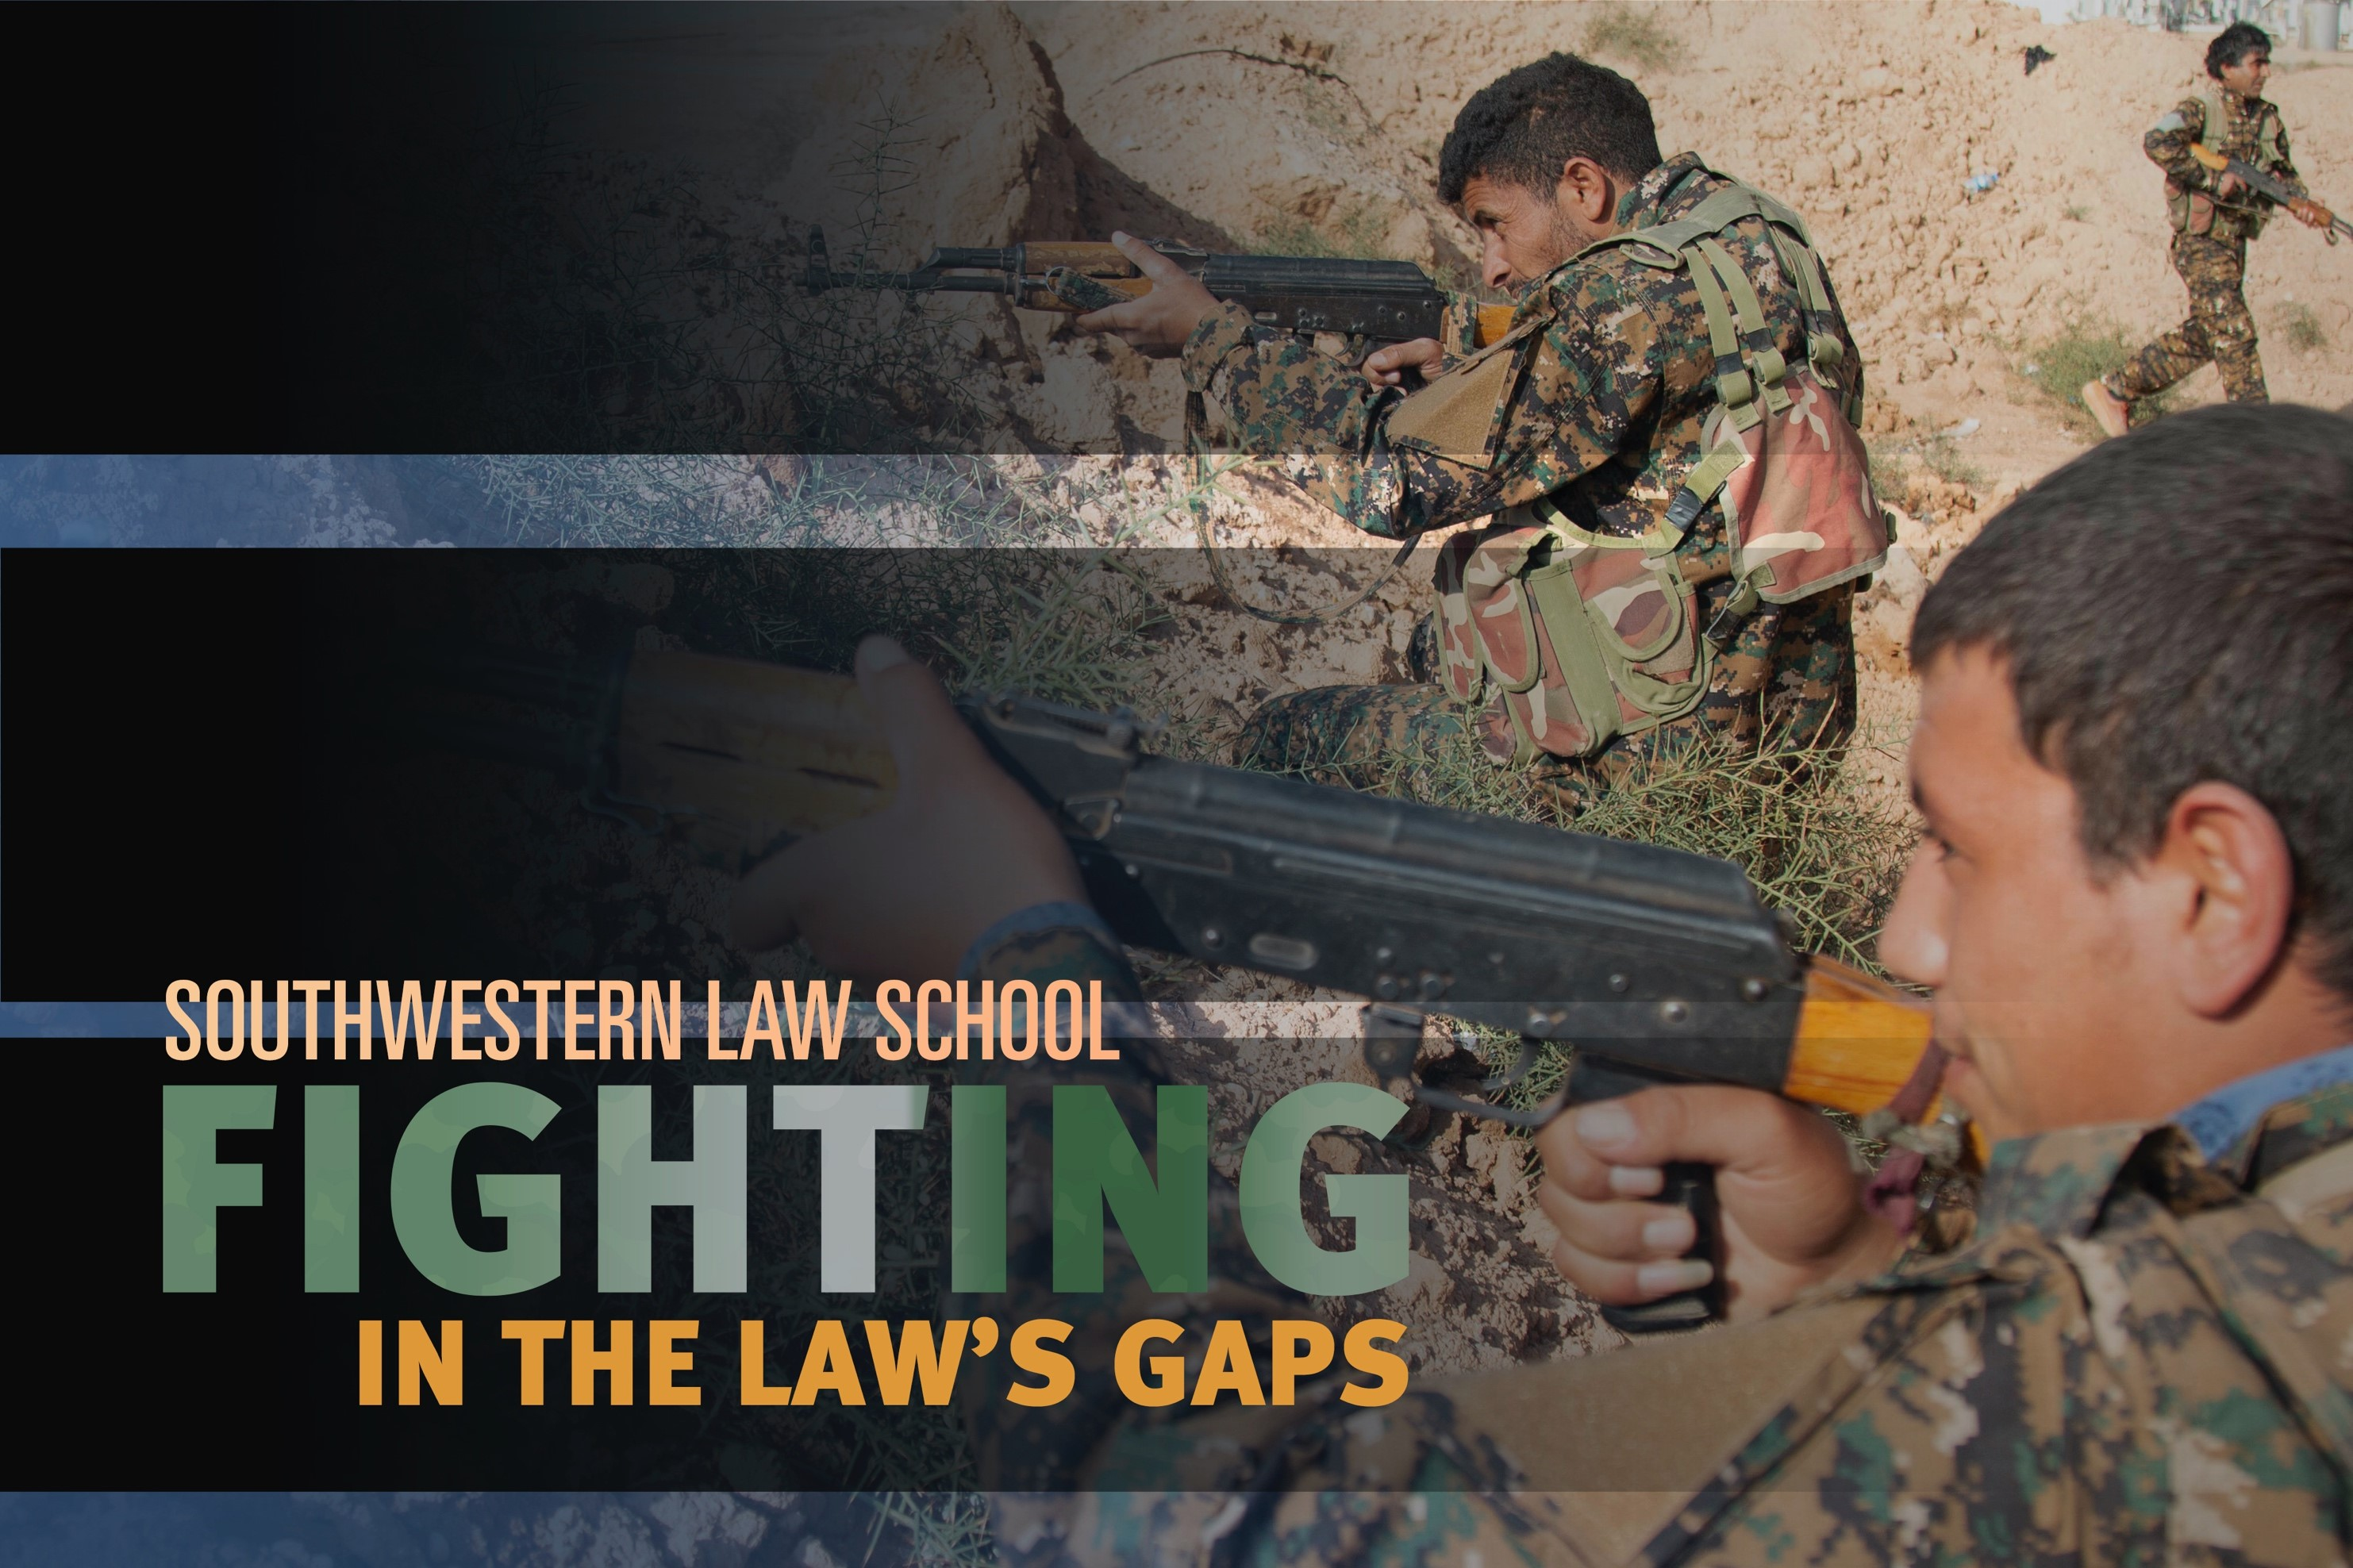 Image - Fighting in the Law's Gaps